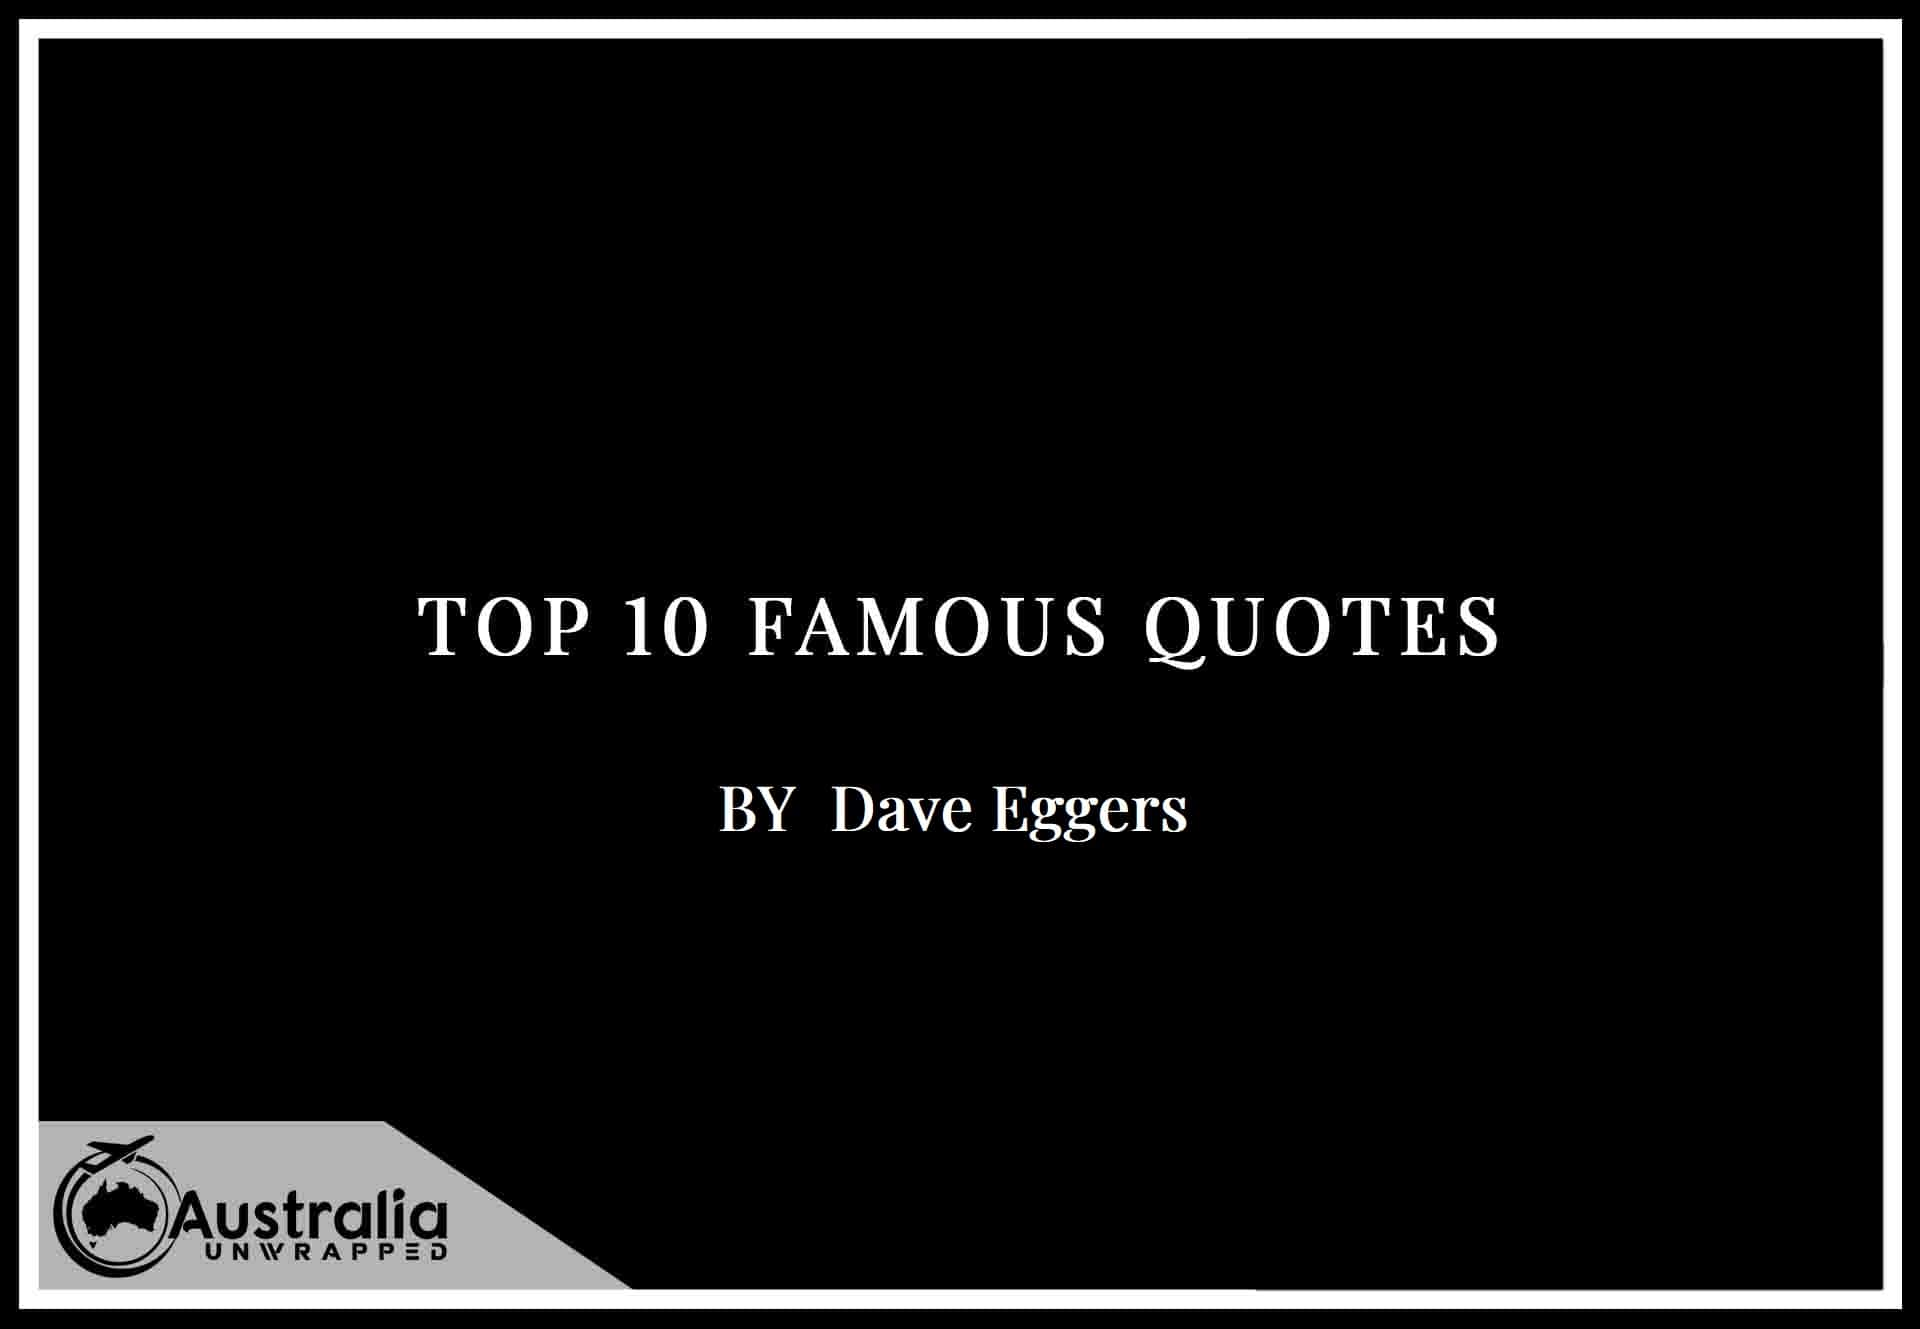 Top 10 Famous Quotes by Author Dave Eggers